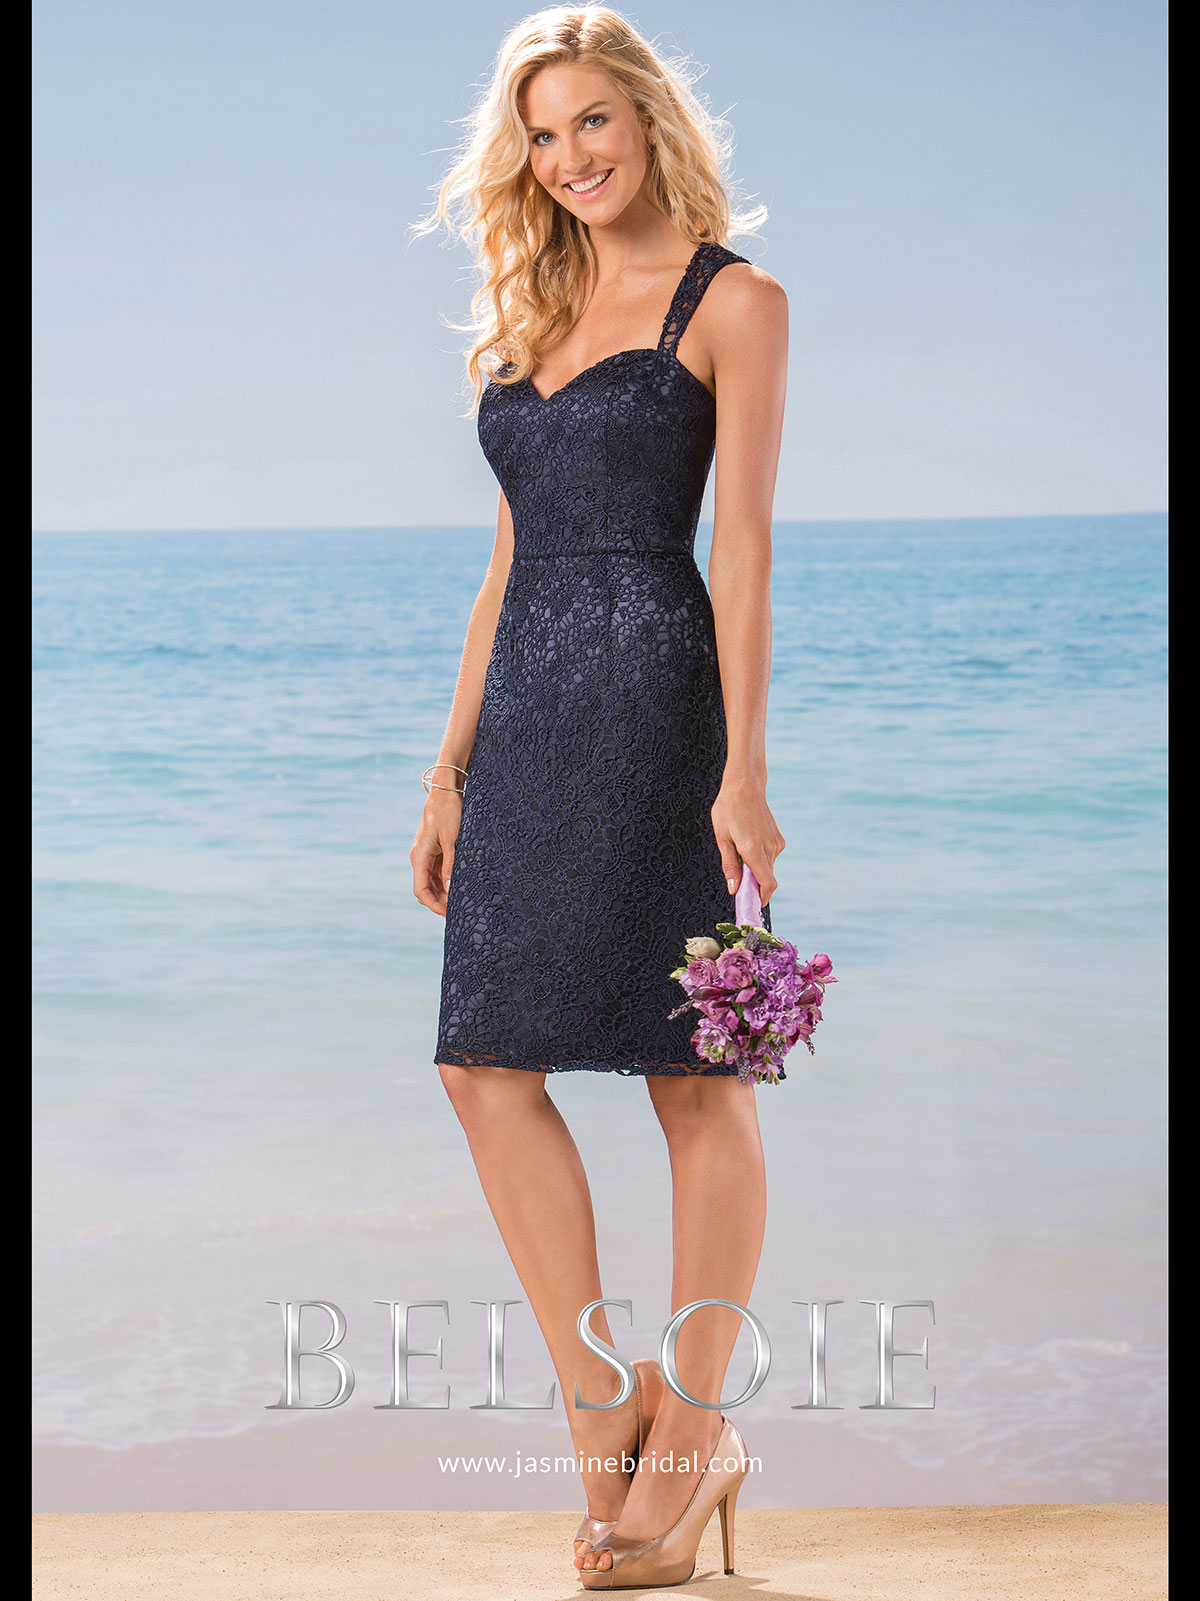 Belsoie l184018 sweetheart lace short bridesmaid dress belsoie l184018 sweetheart lace bridesmaid dress ombrellifo Image collections